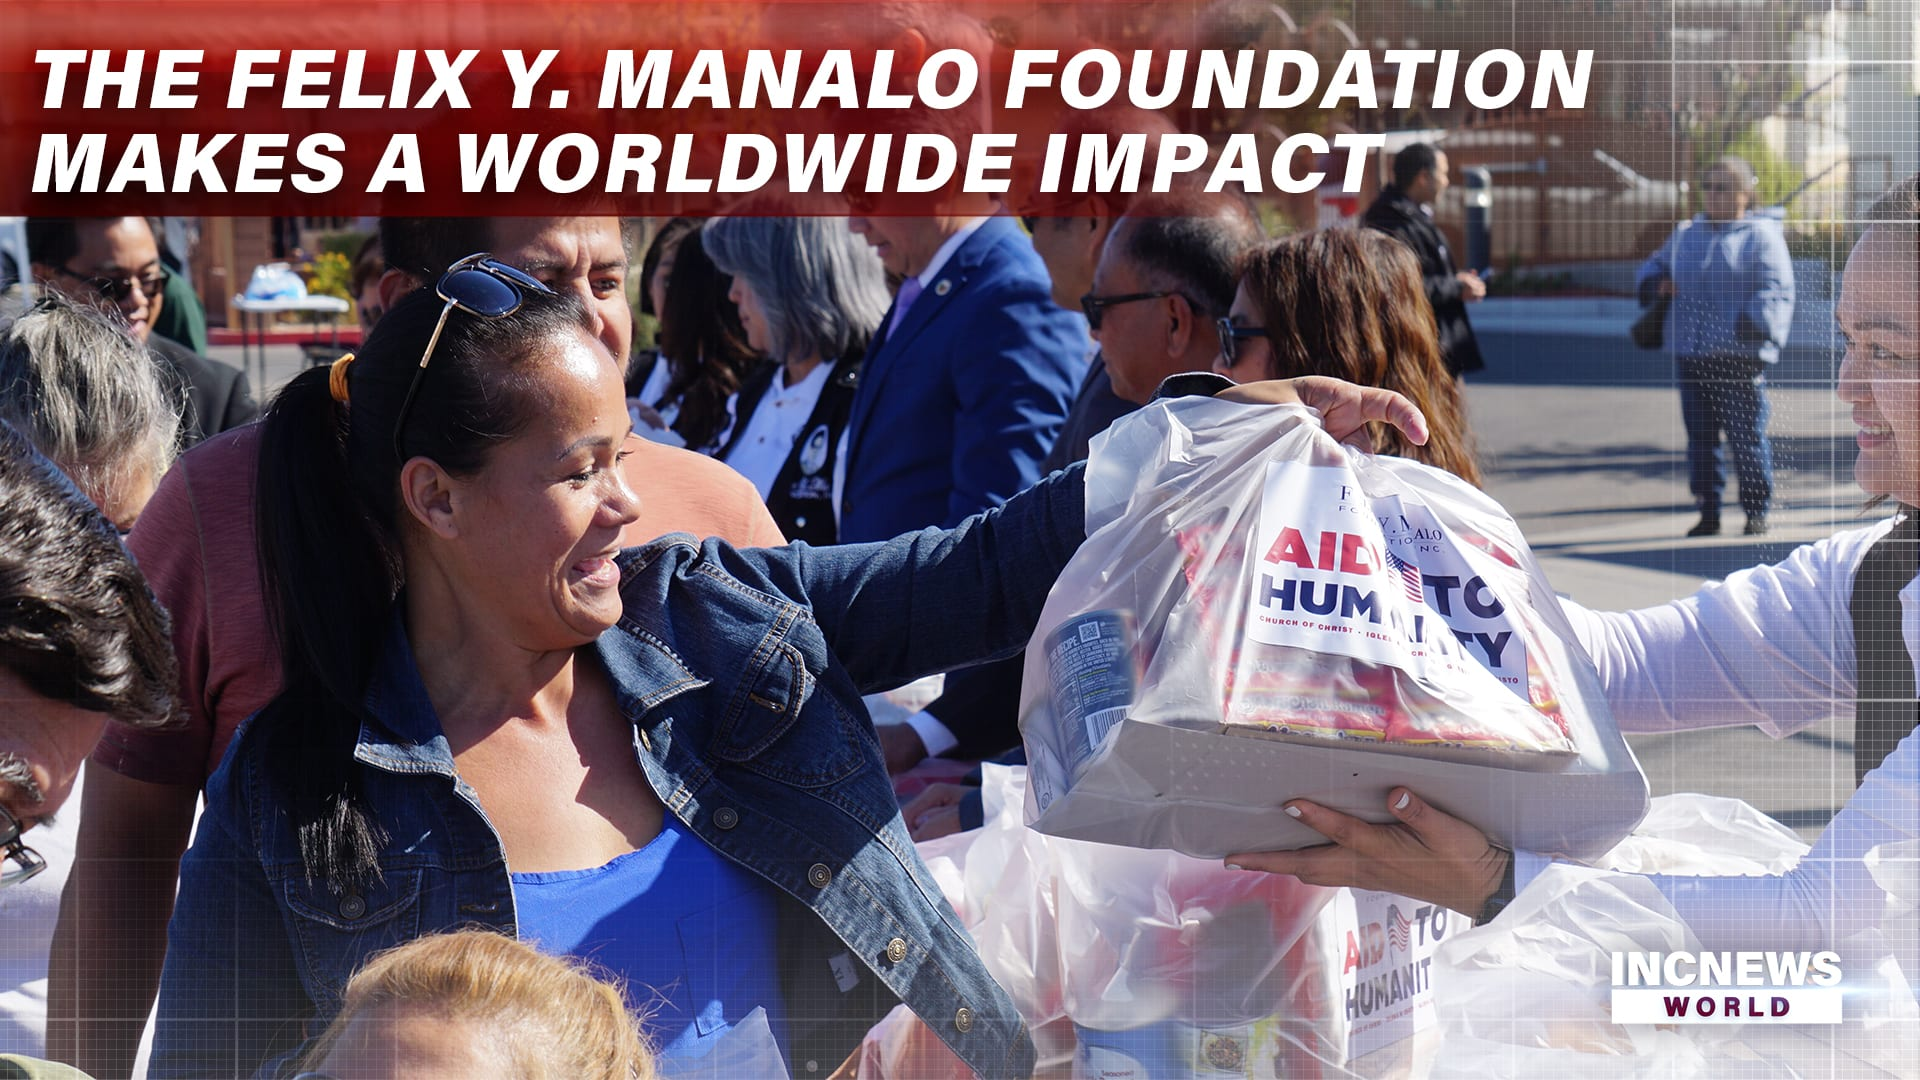 The Felix Y. Manalo Foundation Makes a Worldwide Impact